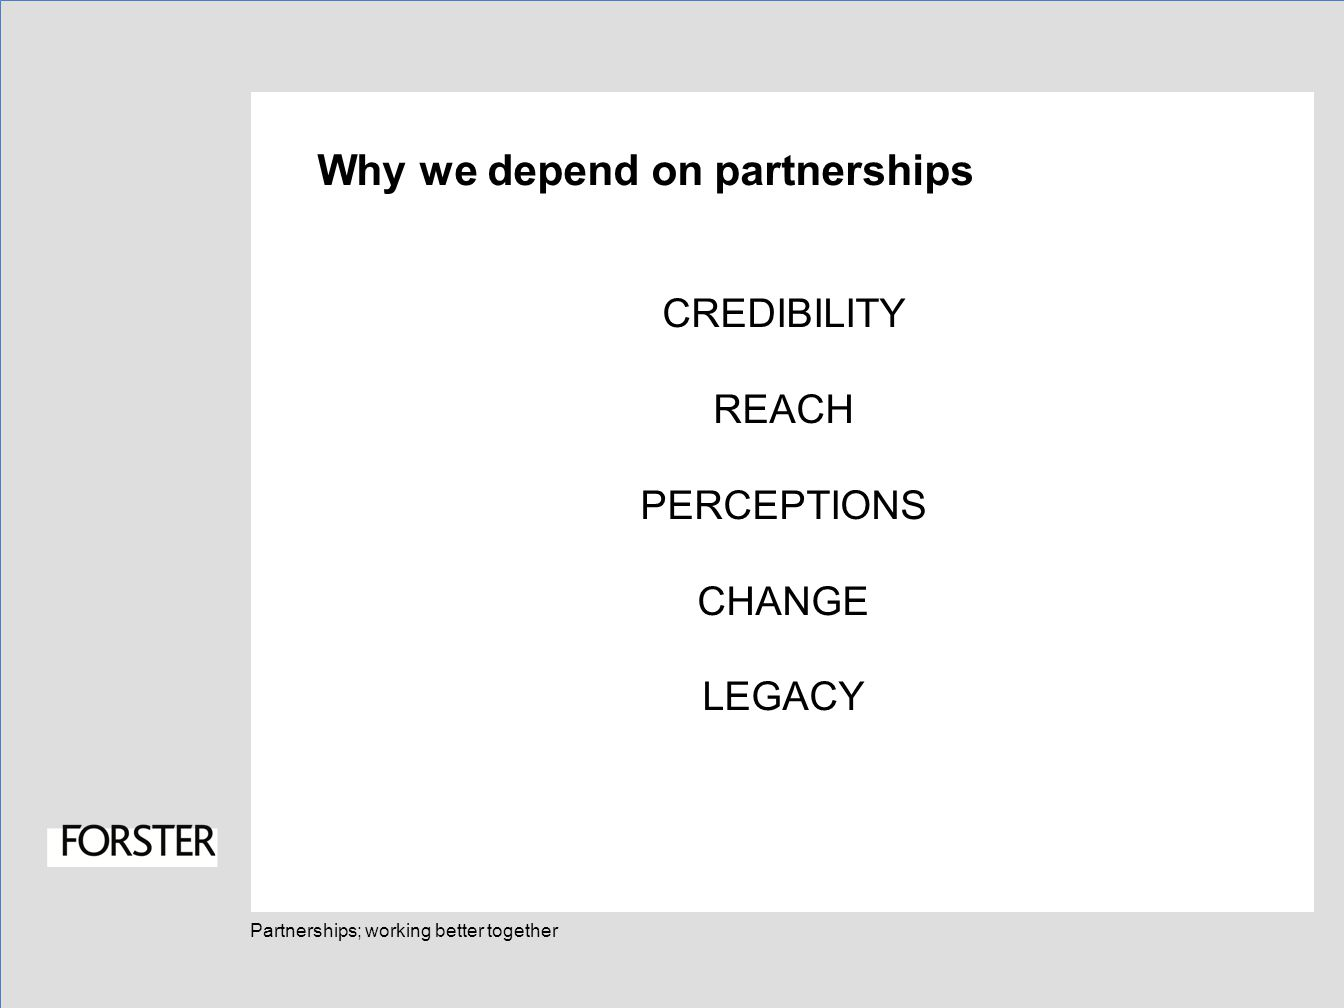 Partnerships; working better together Why we depend on partnerships CREDIBILITY REACH PERCEPTIONS CHANGE LEGACY